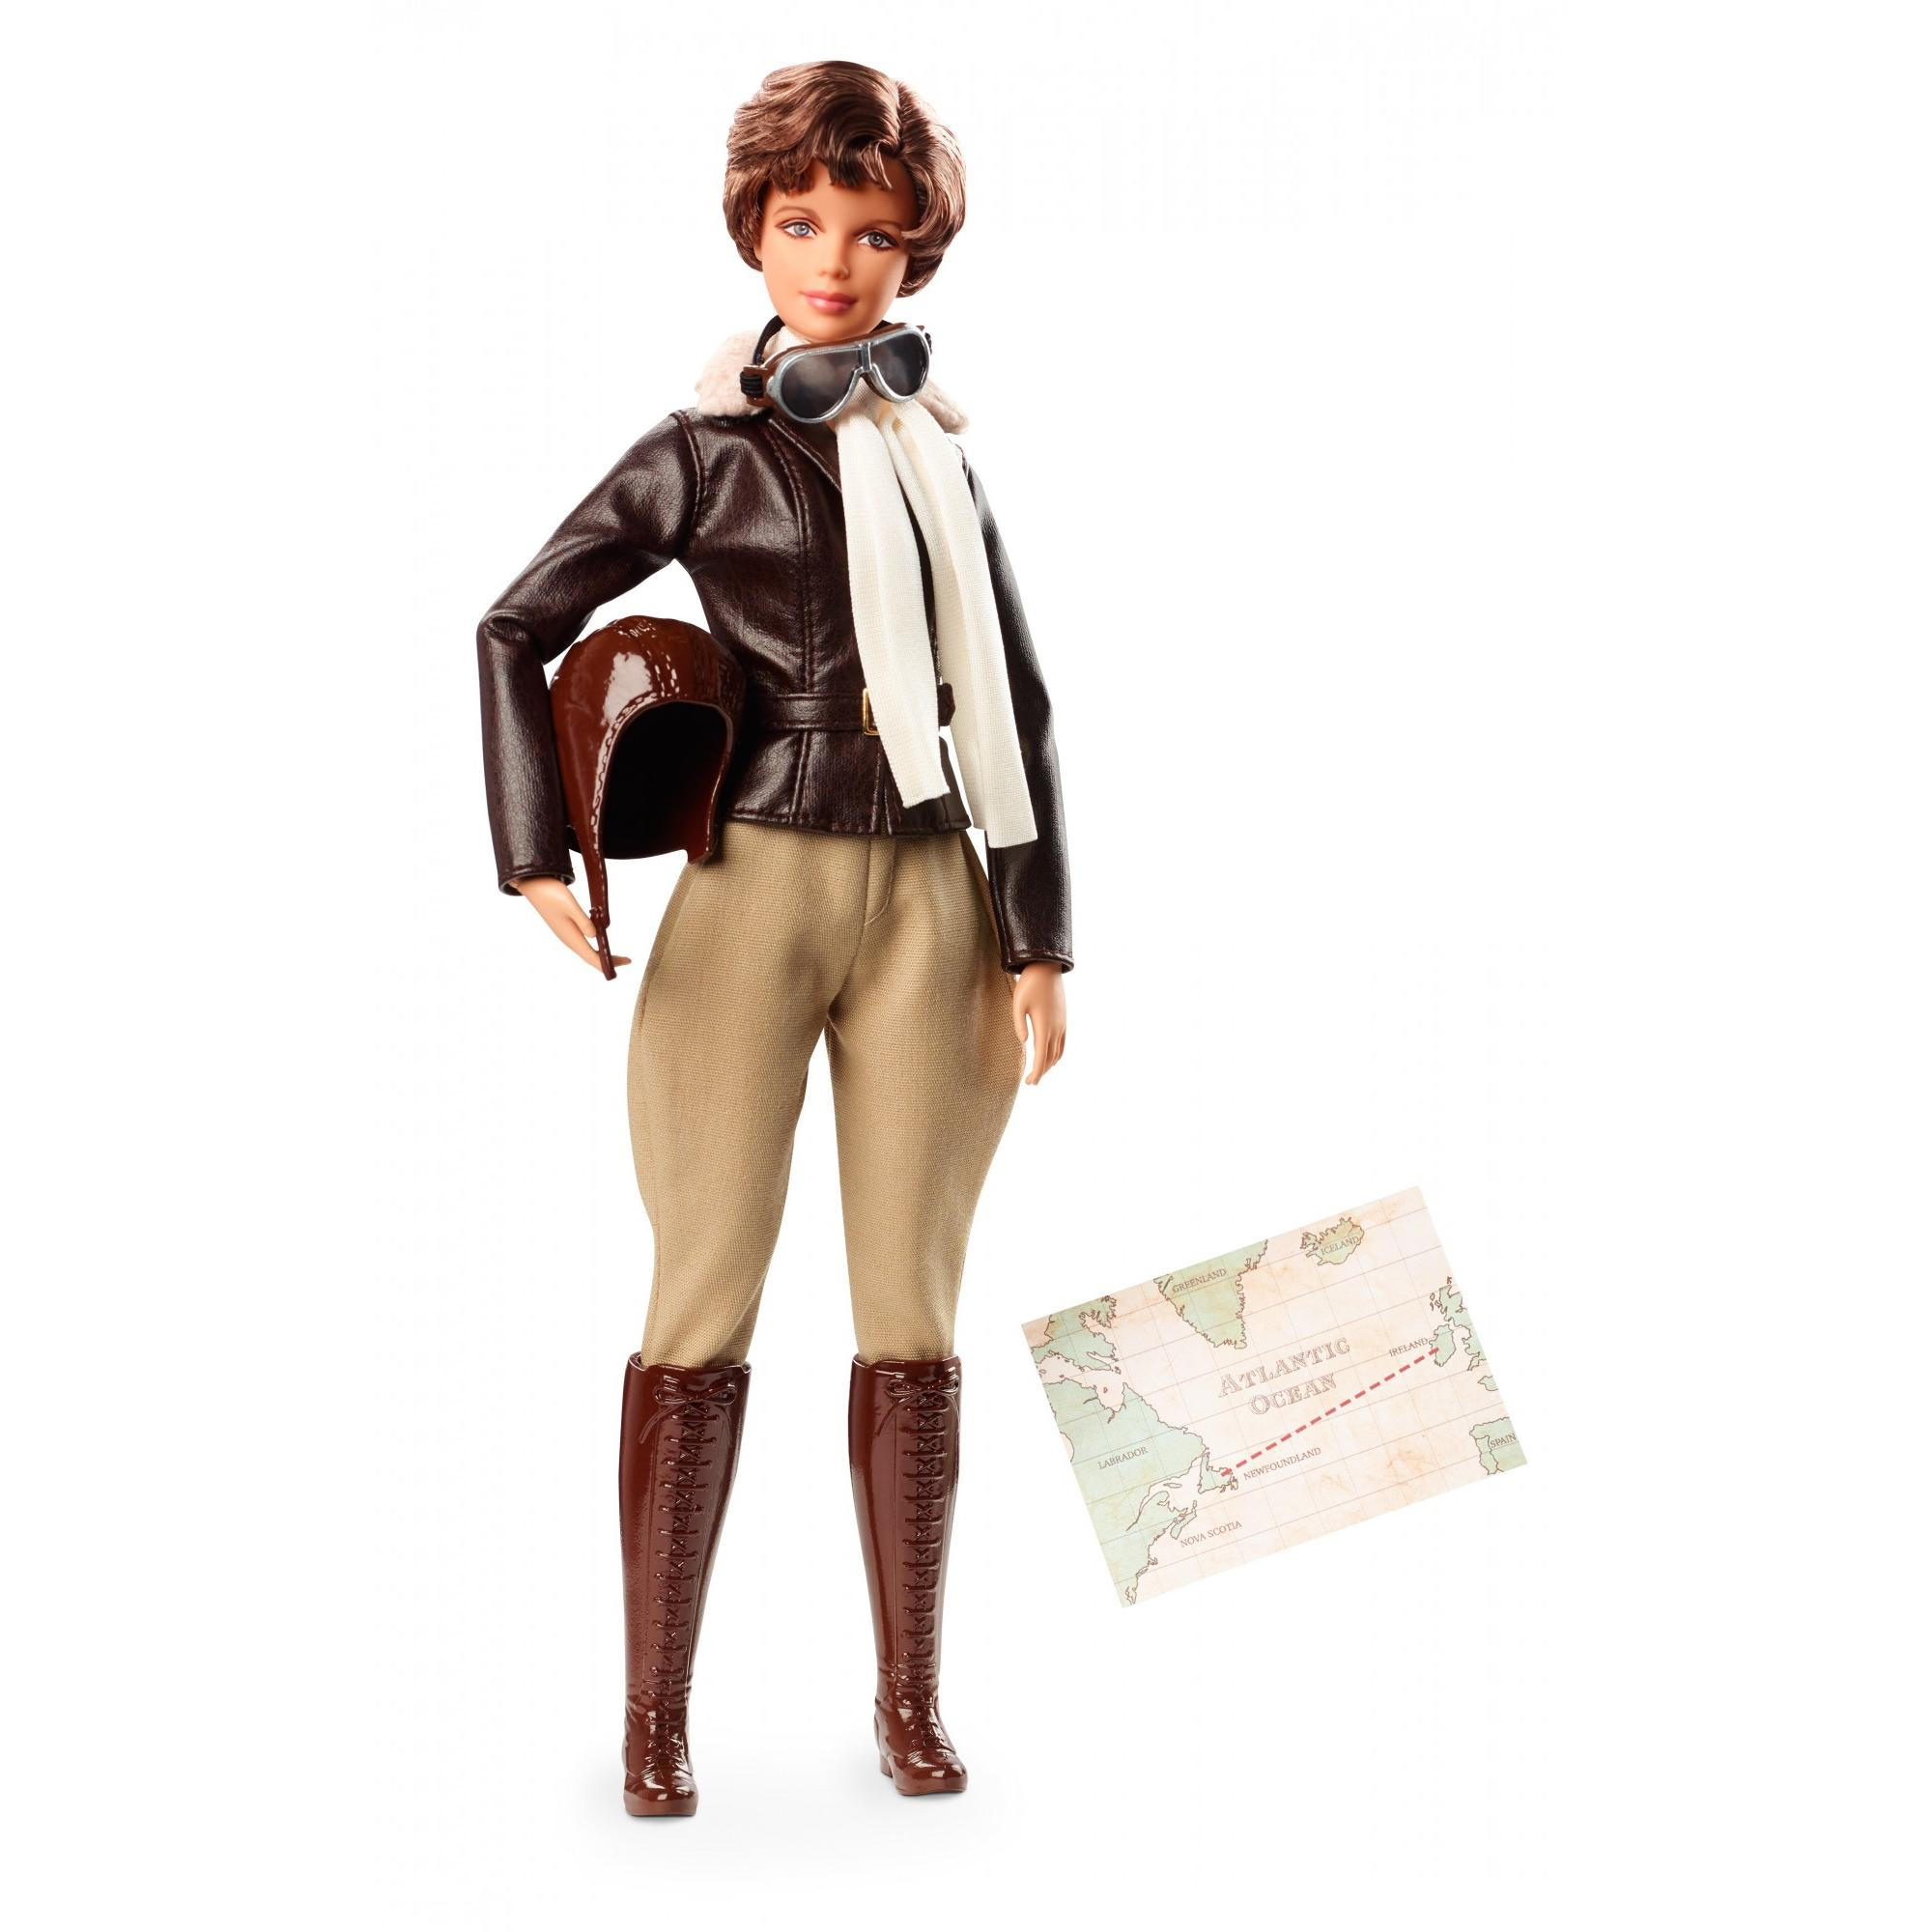 Barbie Inspiring Women Series Amelia Earhart Doll